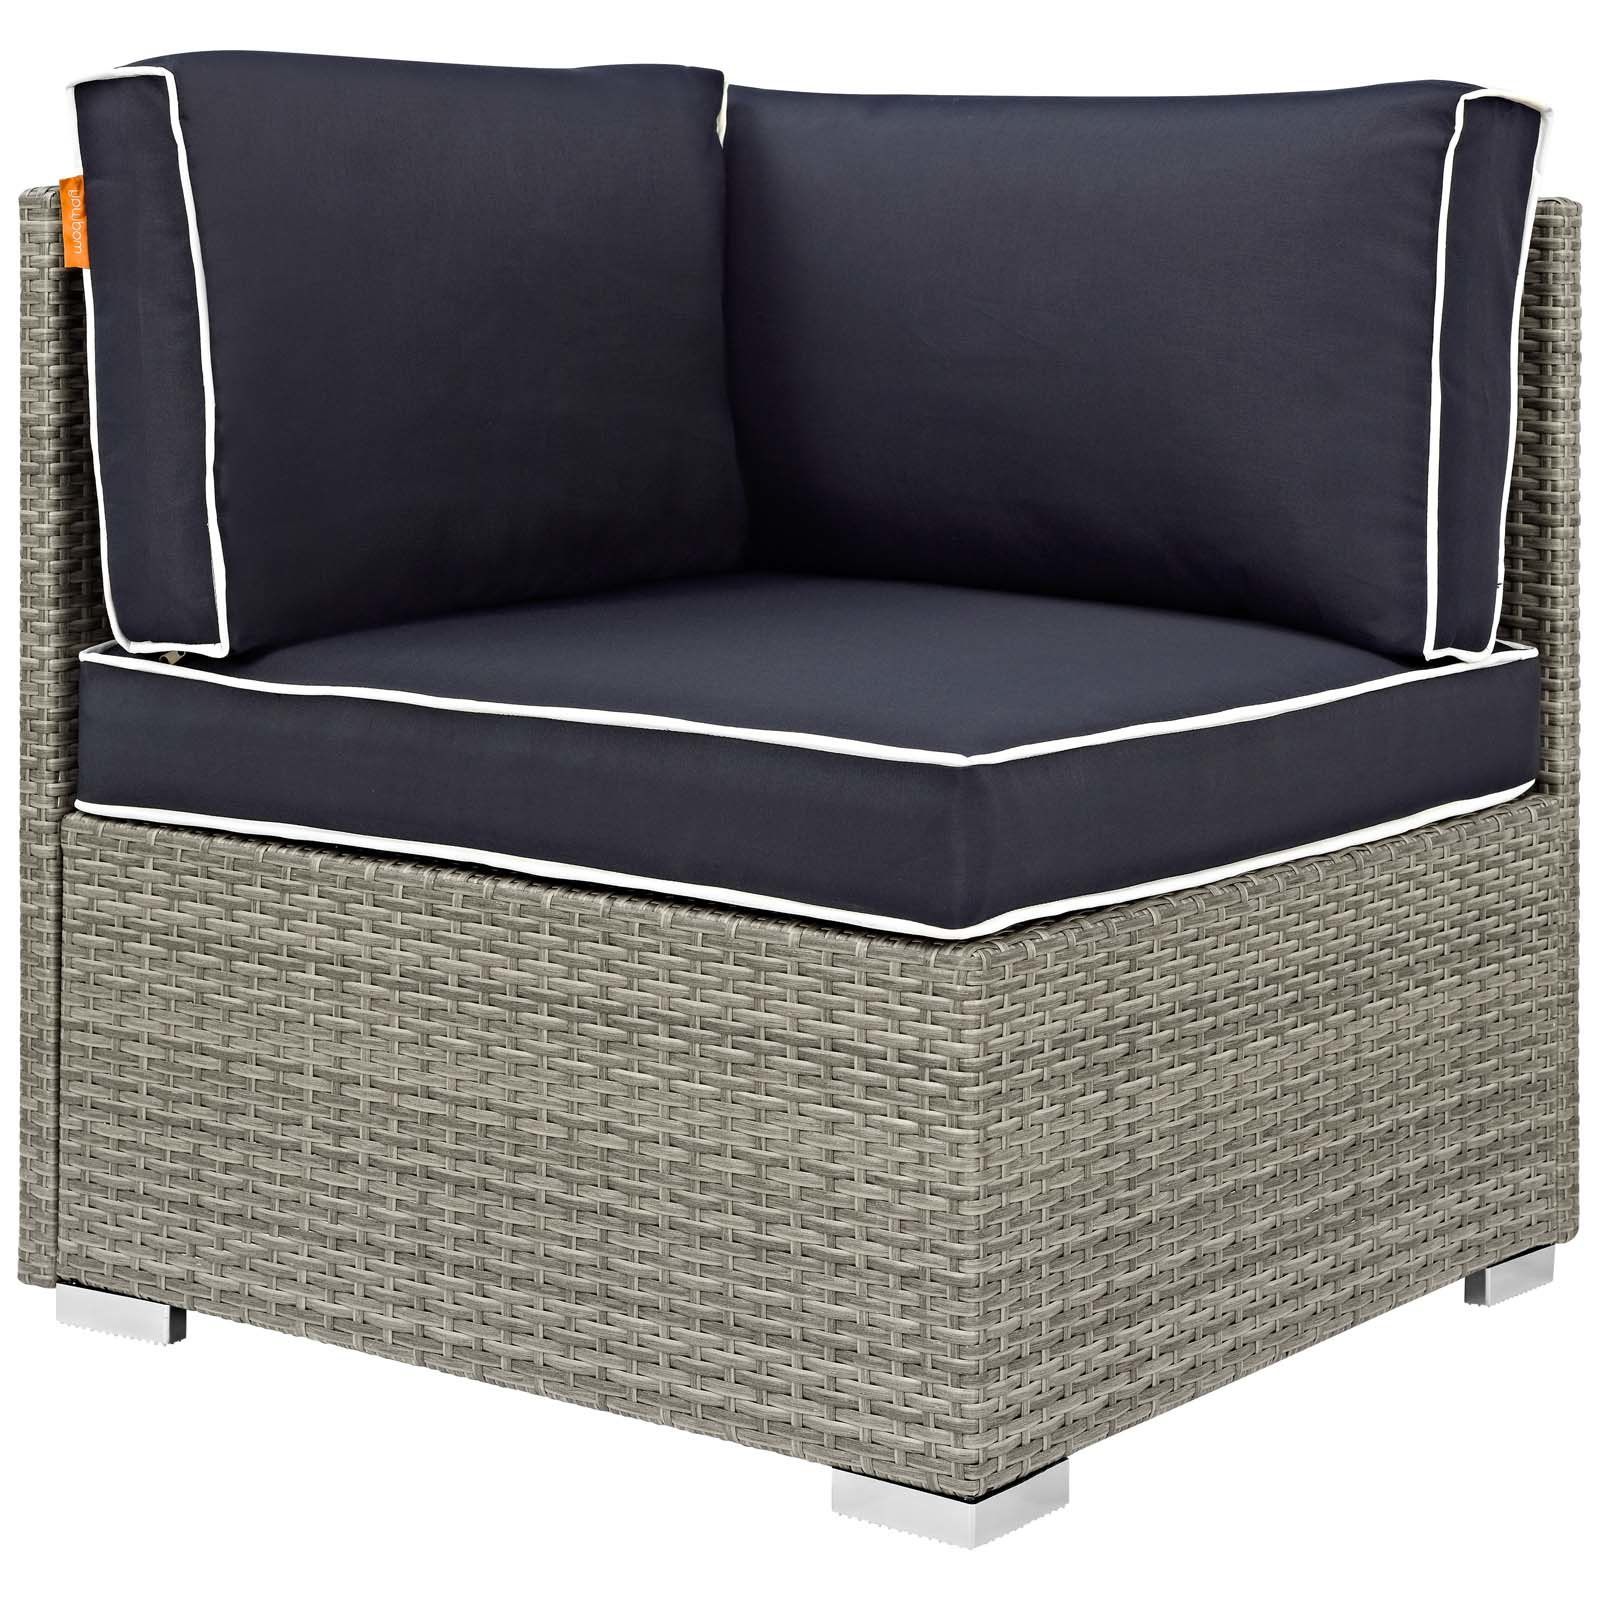 Preferred Heinrich Outdoor Corner Patio Chair With Cushion Within Hursey Patio Sofas (Gallery 15 of 20)